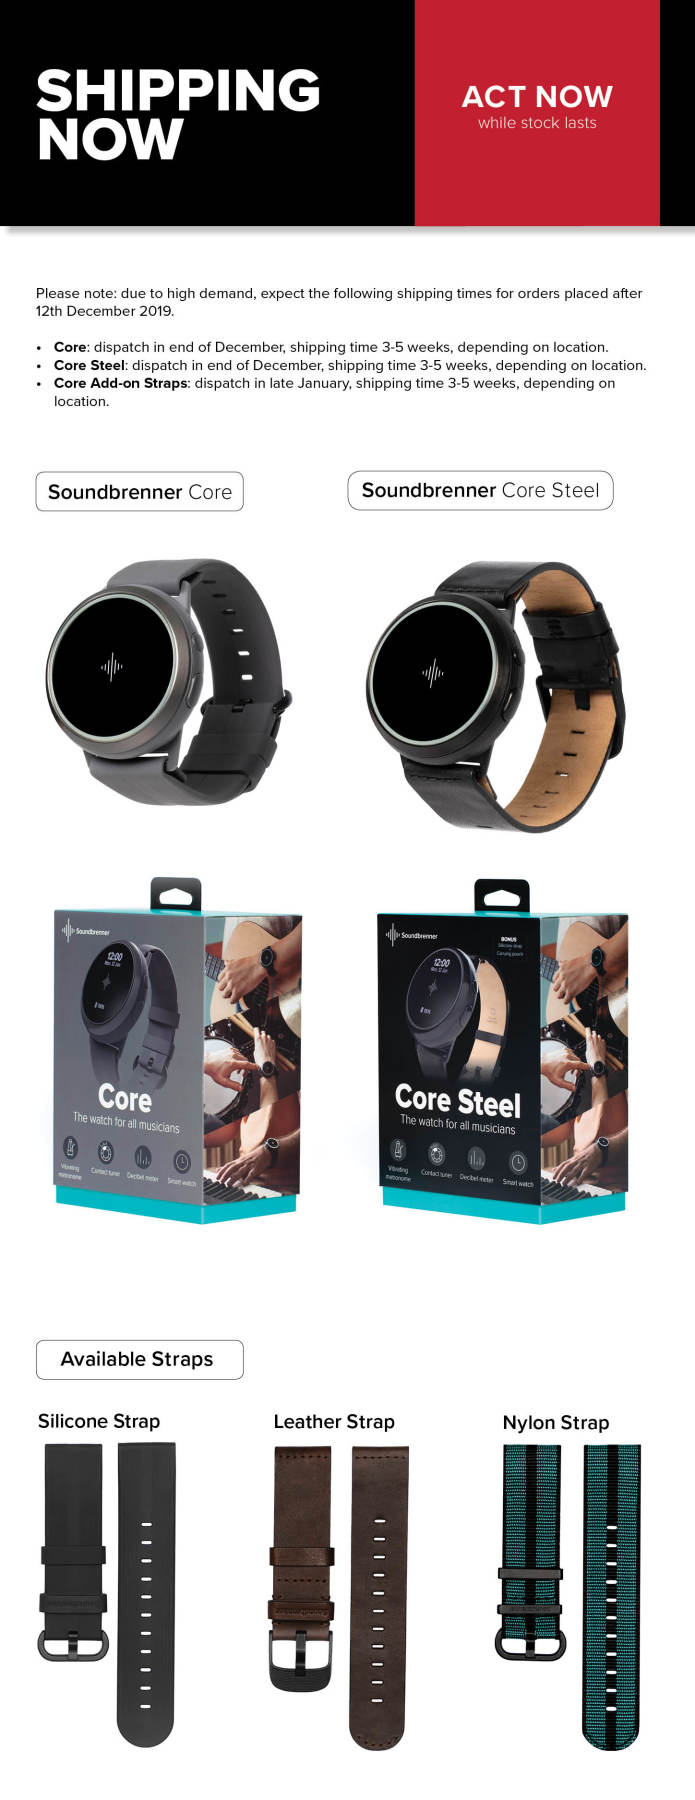 Soundbrenner Core: The 4-in-1 Smart Music Tool-GadgetAny